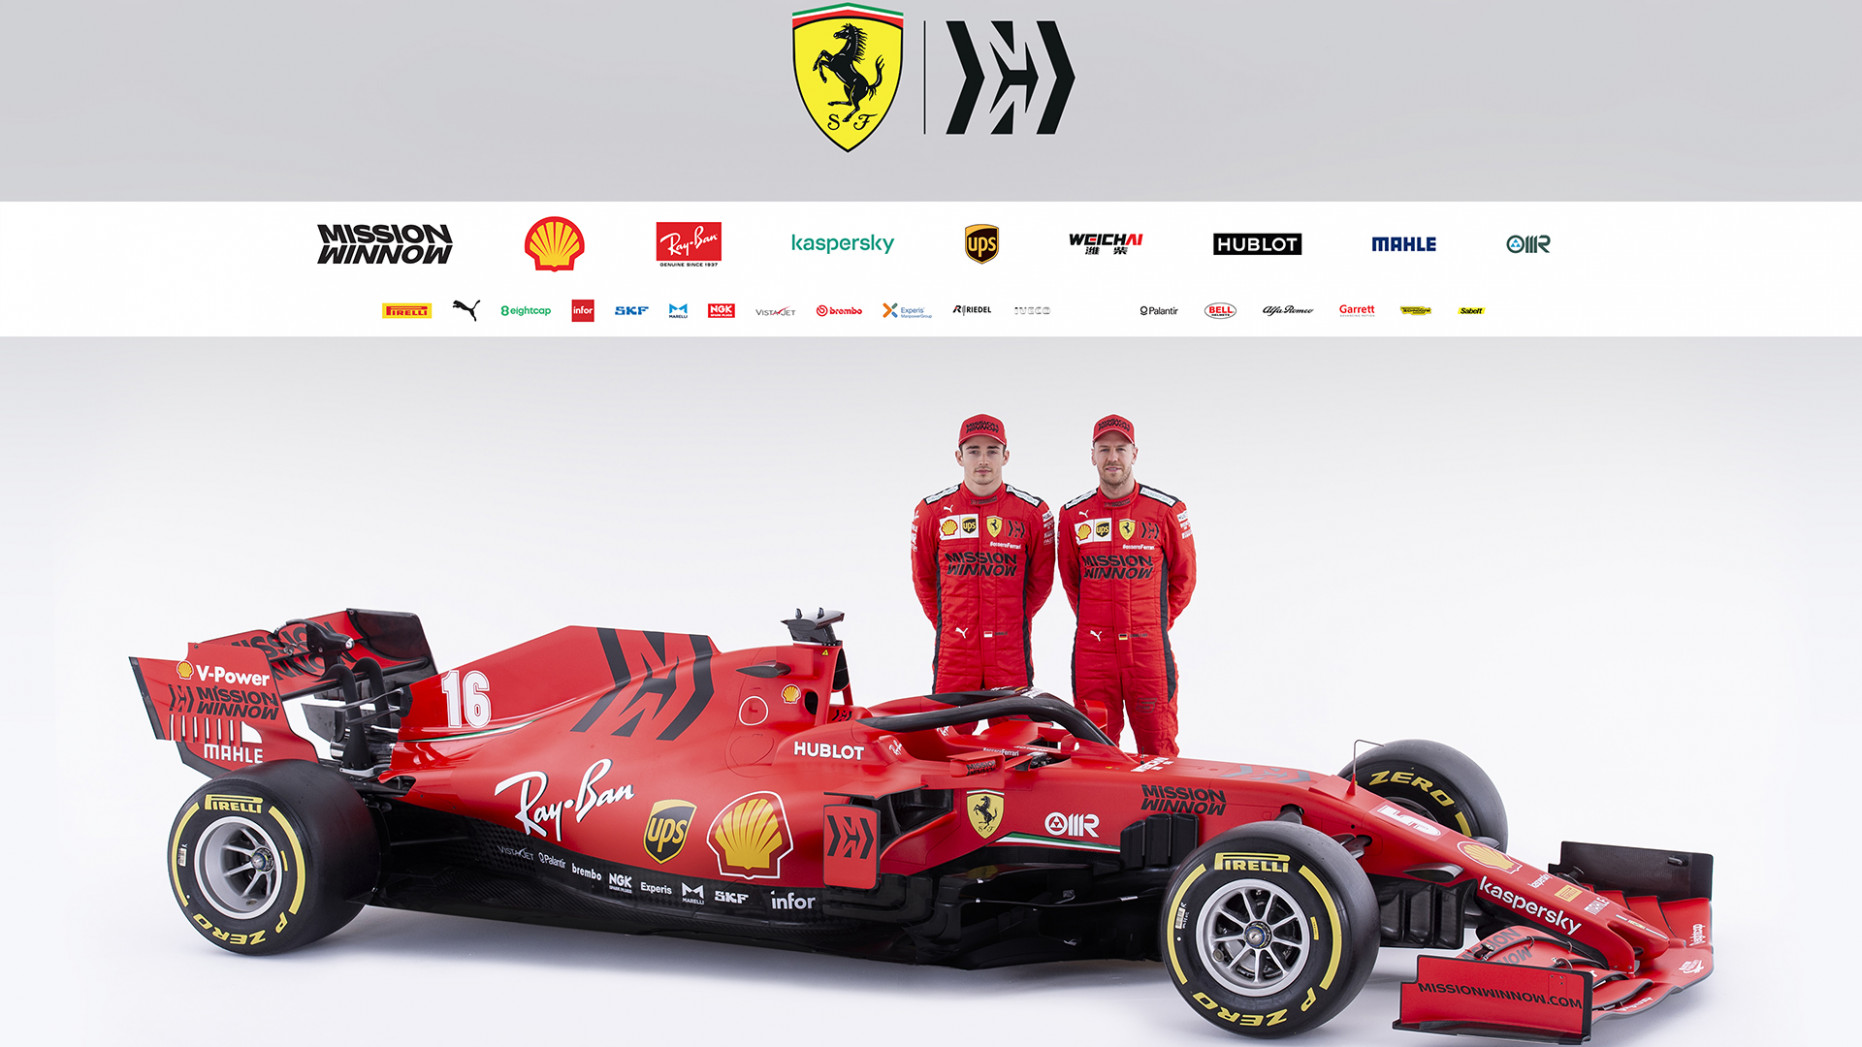 GALLERY: Ferrari SF8 launch: Ferrari unveil their 8 F8 car ..